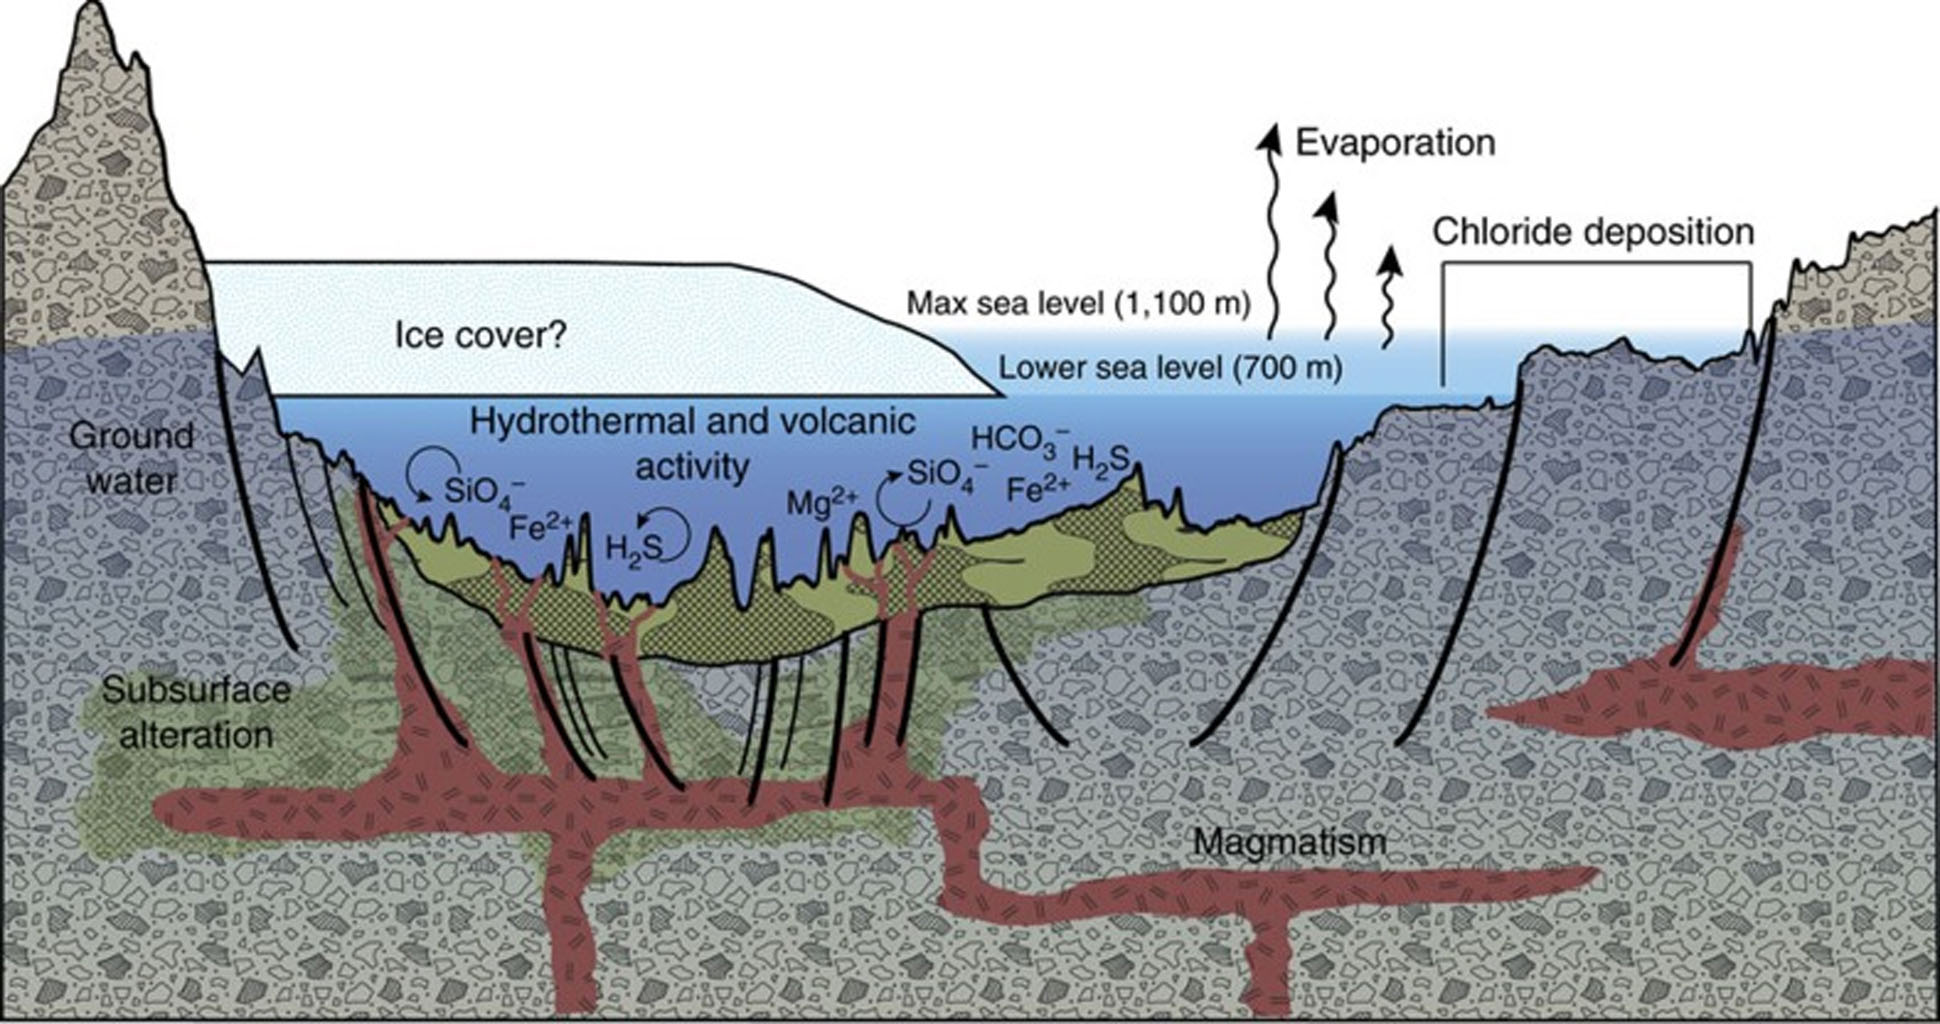 Diagram showing how volcanic activity may have caused deposition of minerals on floor of Eridania Sea. Chlorides were deposited along the shoreline by evaporation.